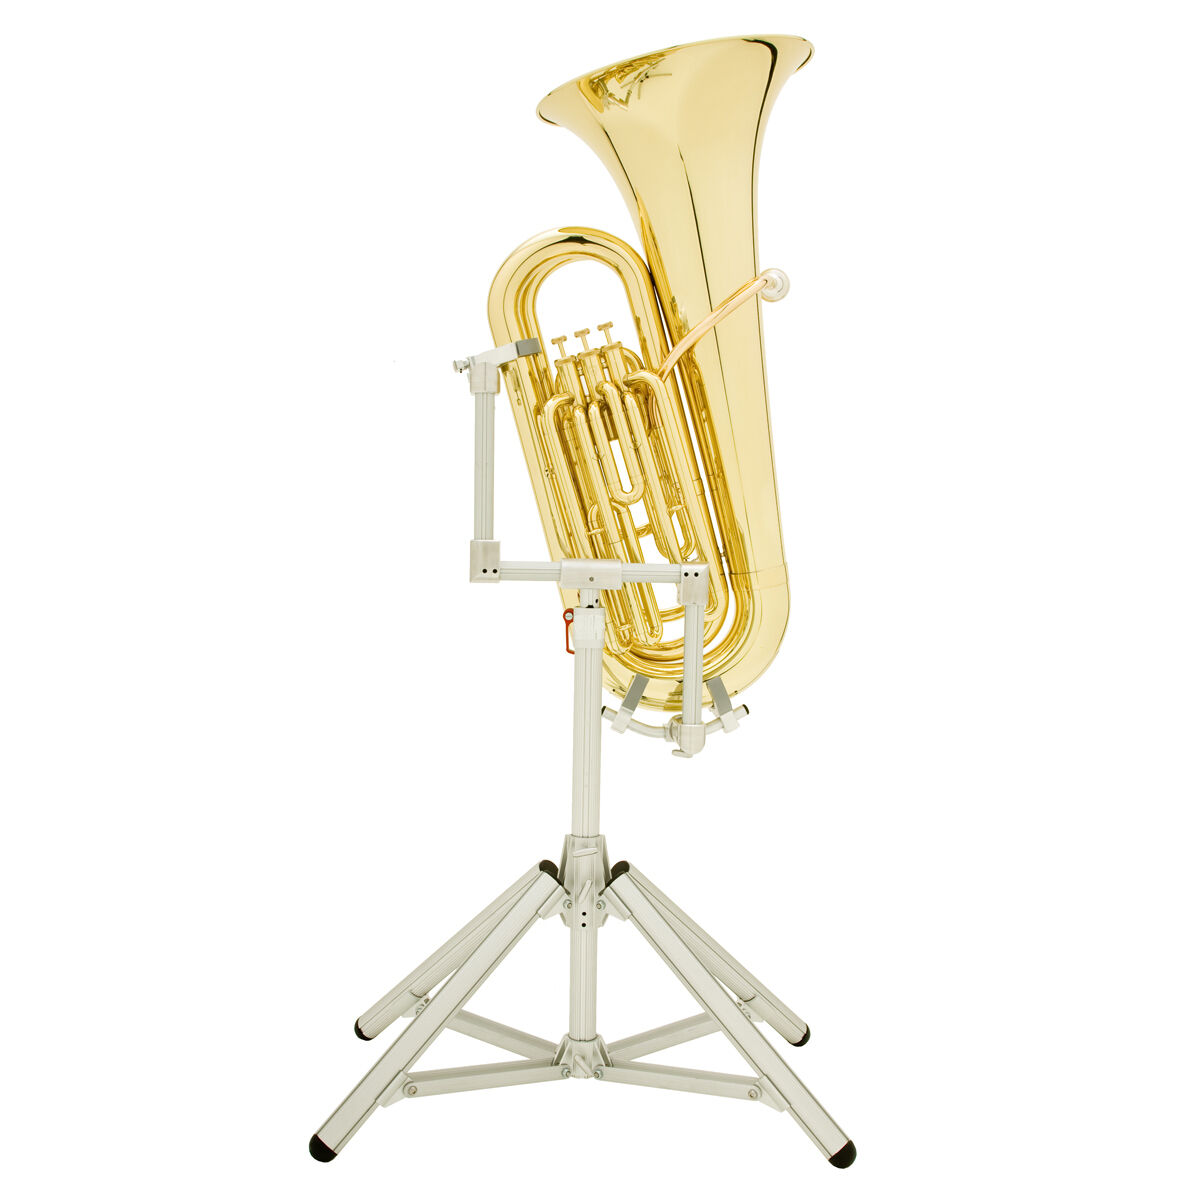 Yamaha RM-SHT34 Stadium Hardware AIRlift 3 4 TUBA Stand NEW IN BOX